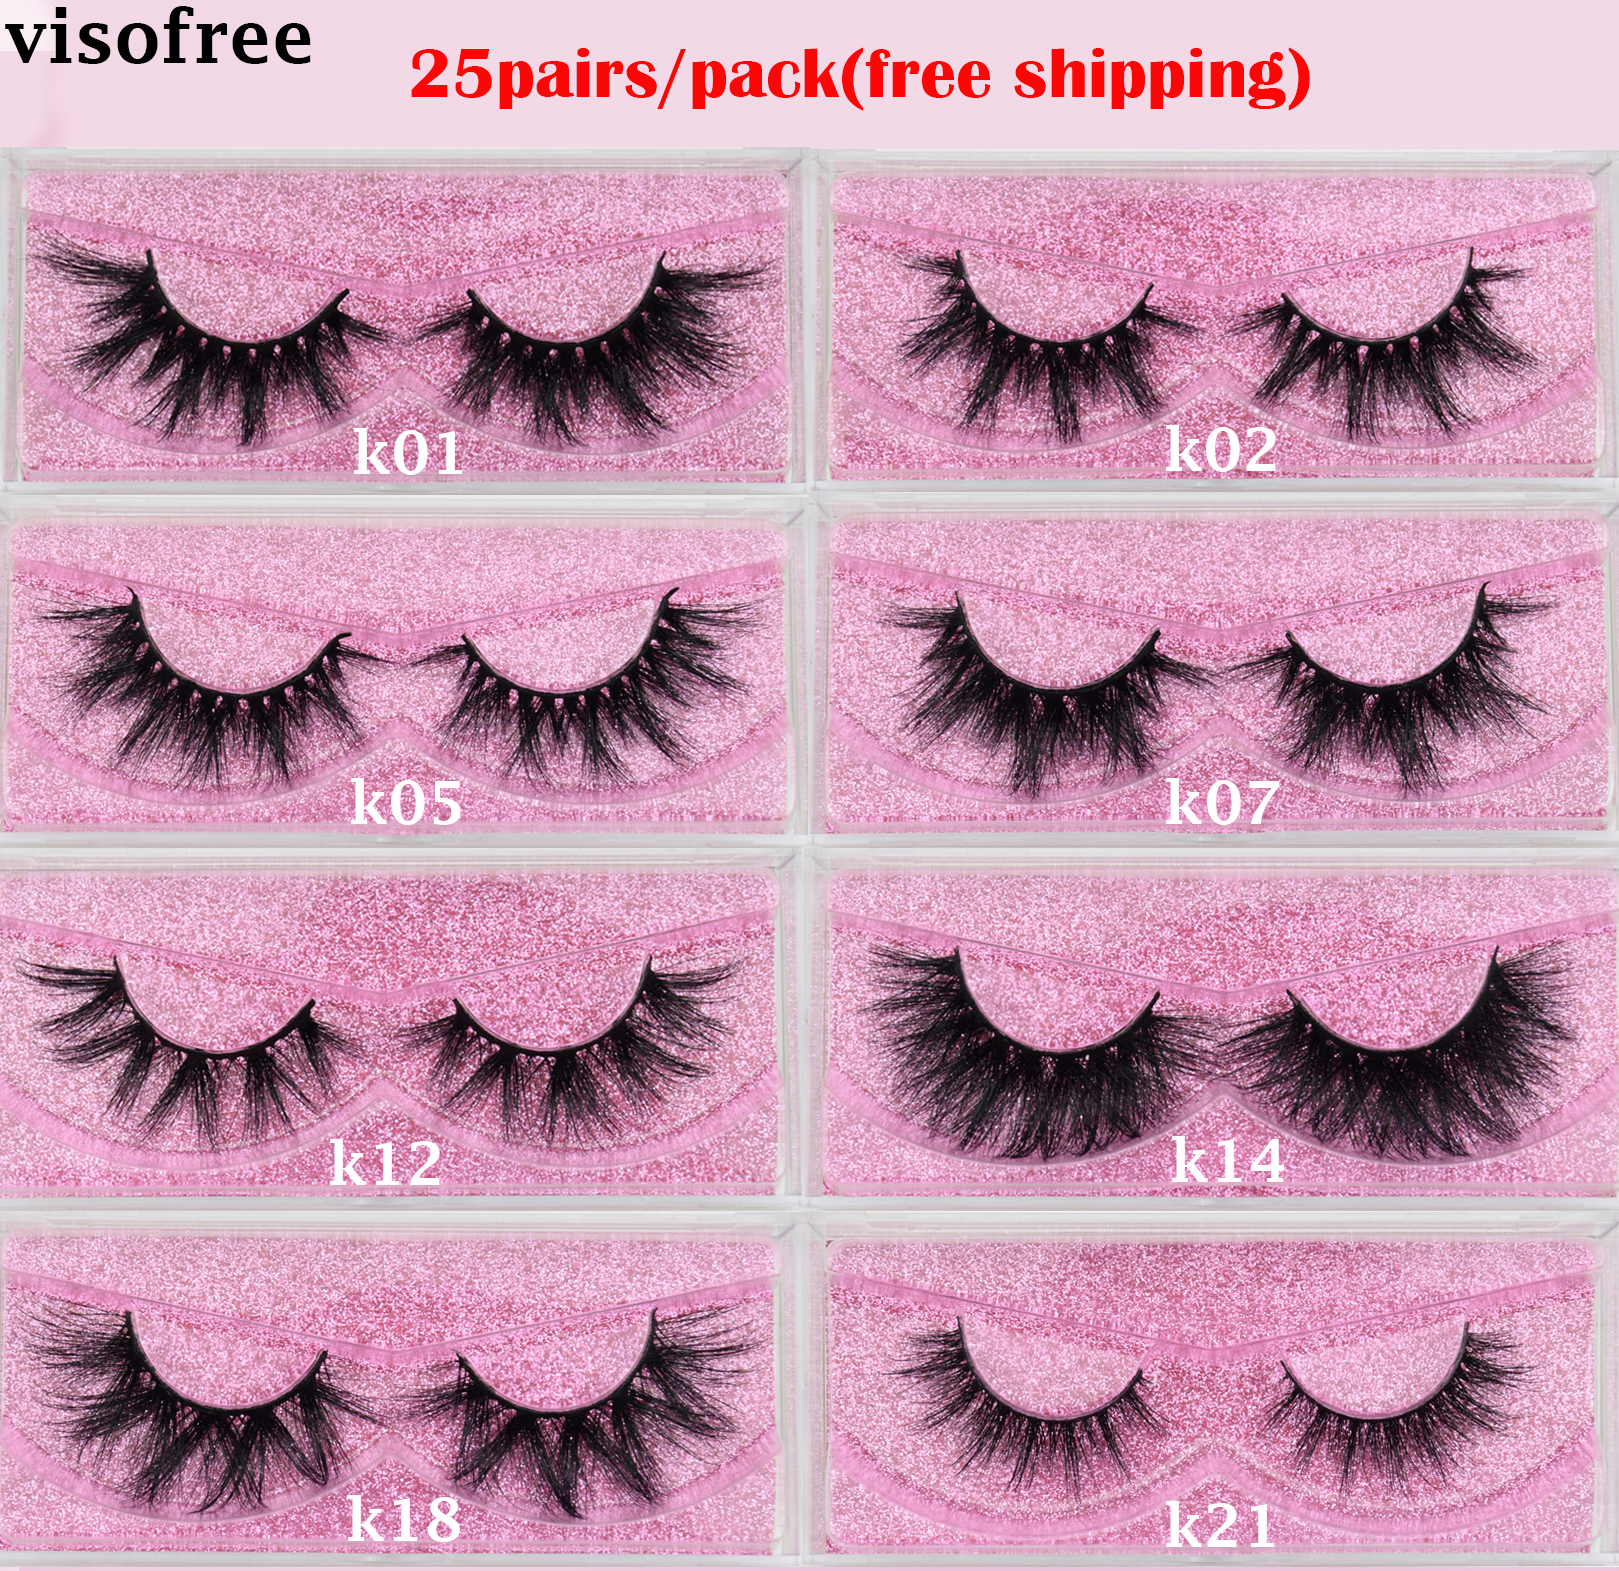 Visofree 25 Pairs/lot Eyelashes Mink Eyelashes Crisscross Dramatic 3D Mink Lashes Volume Long False Eyelashes Handmade Lashes